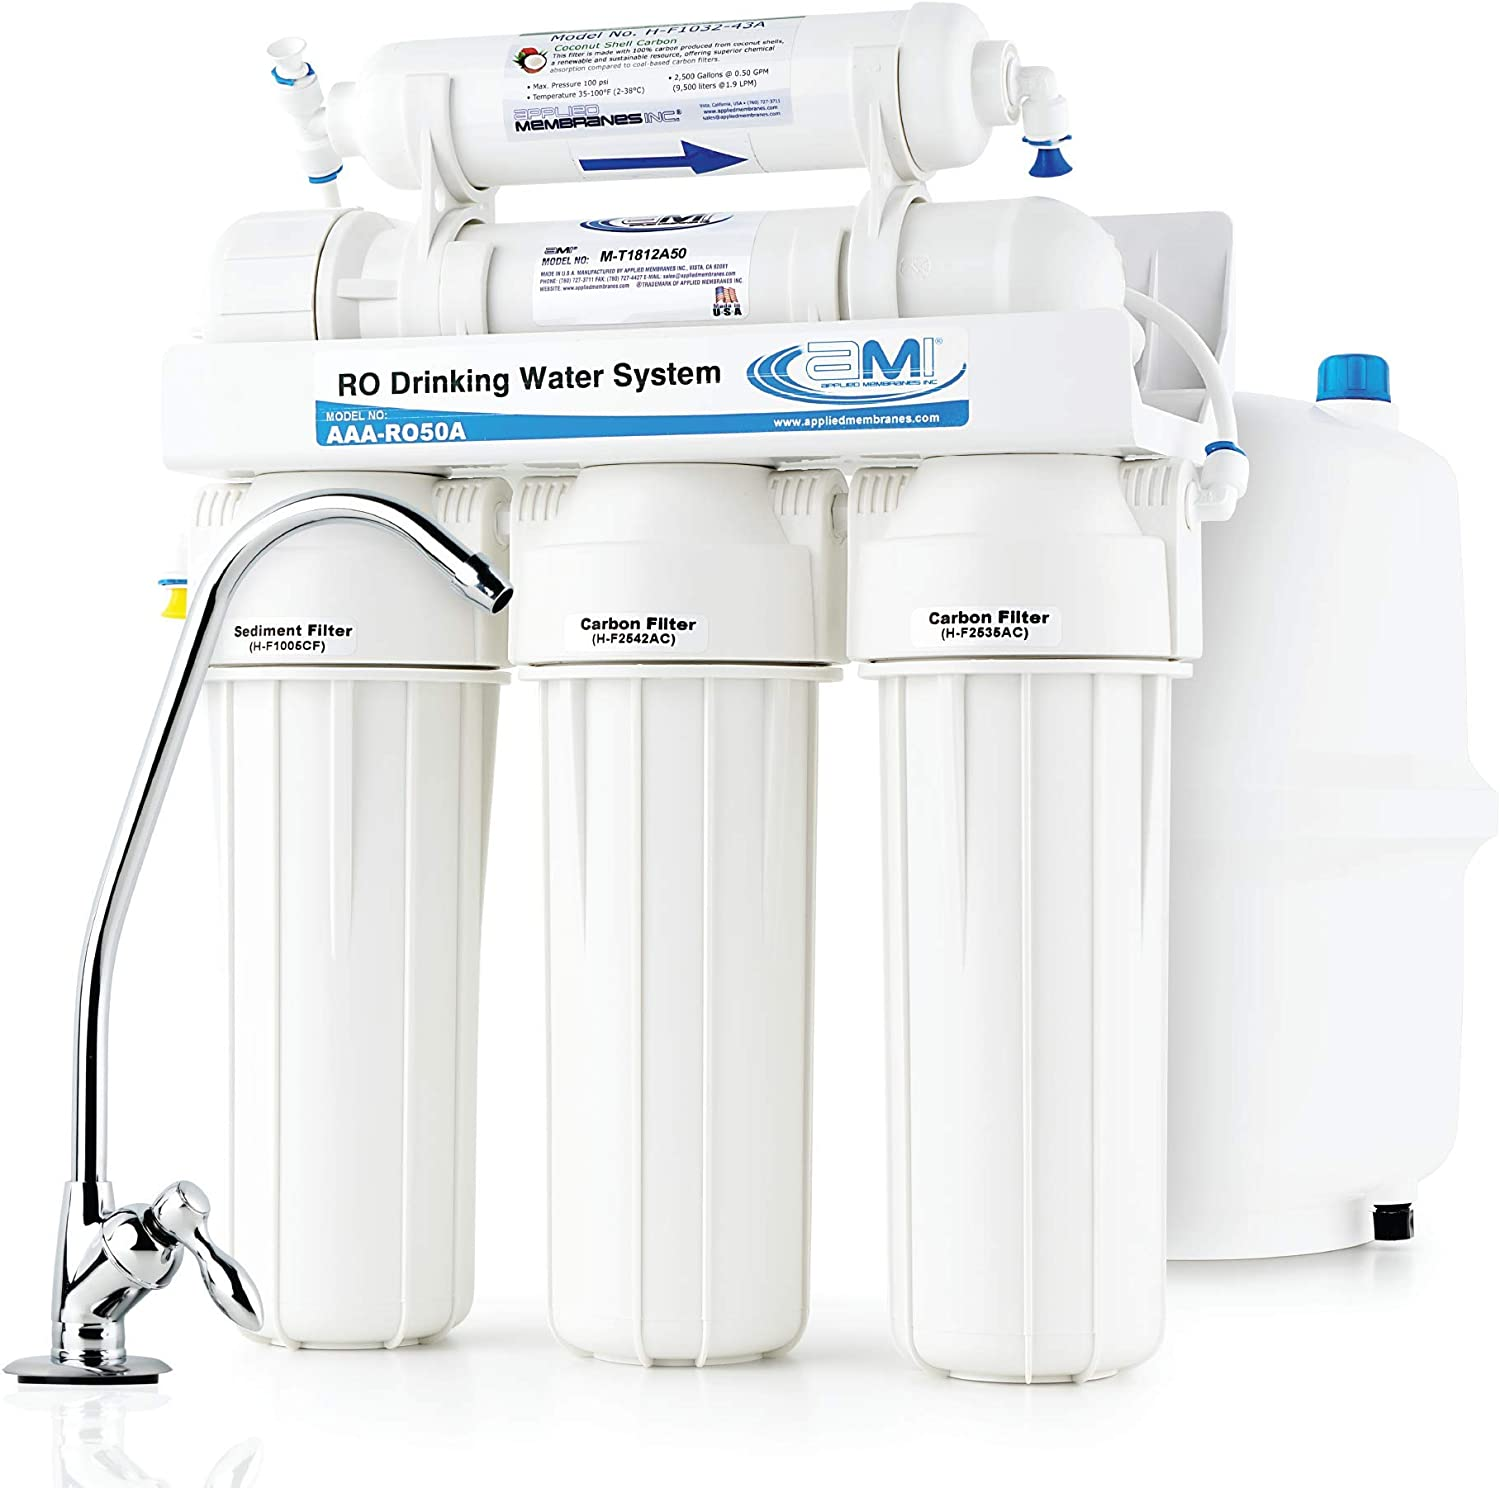 APPLIED MEMBRANES Reverse Osmosis Fresno Mall Filtration System High material Under Water